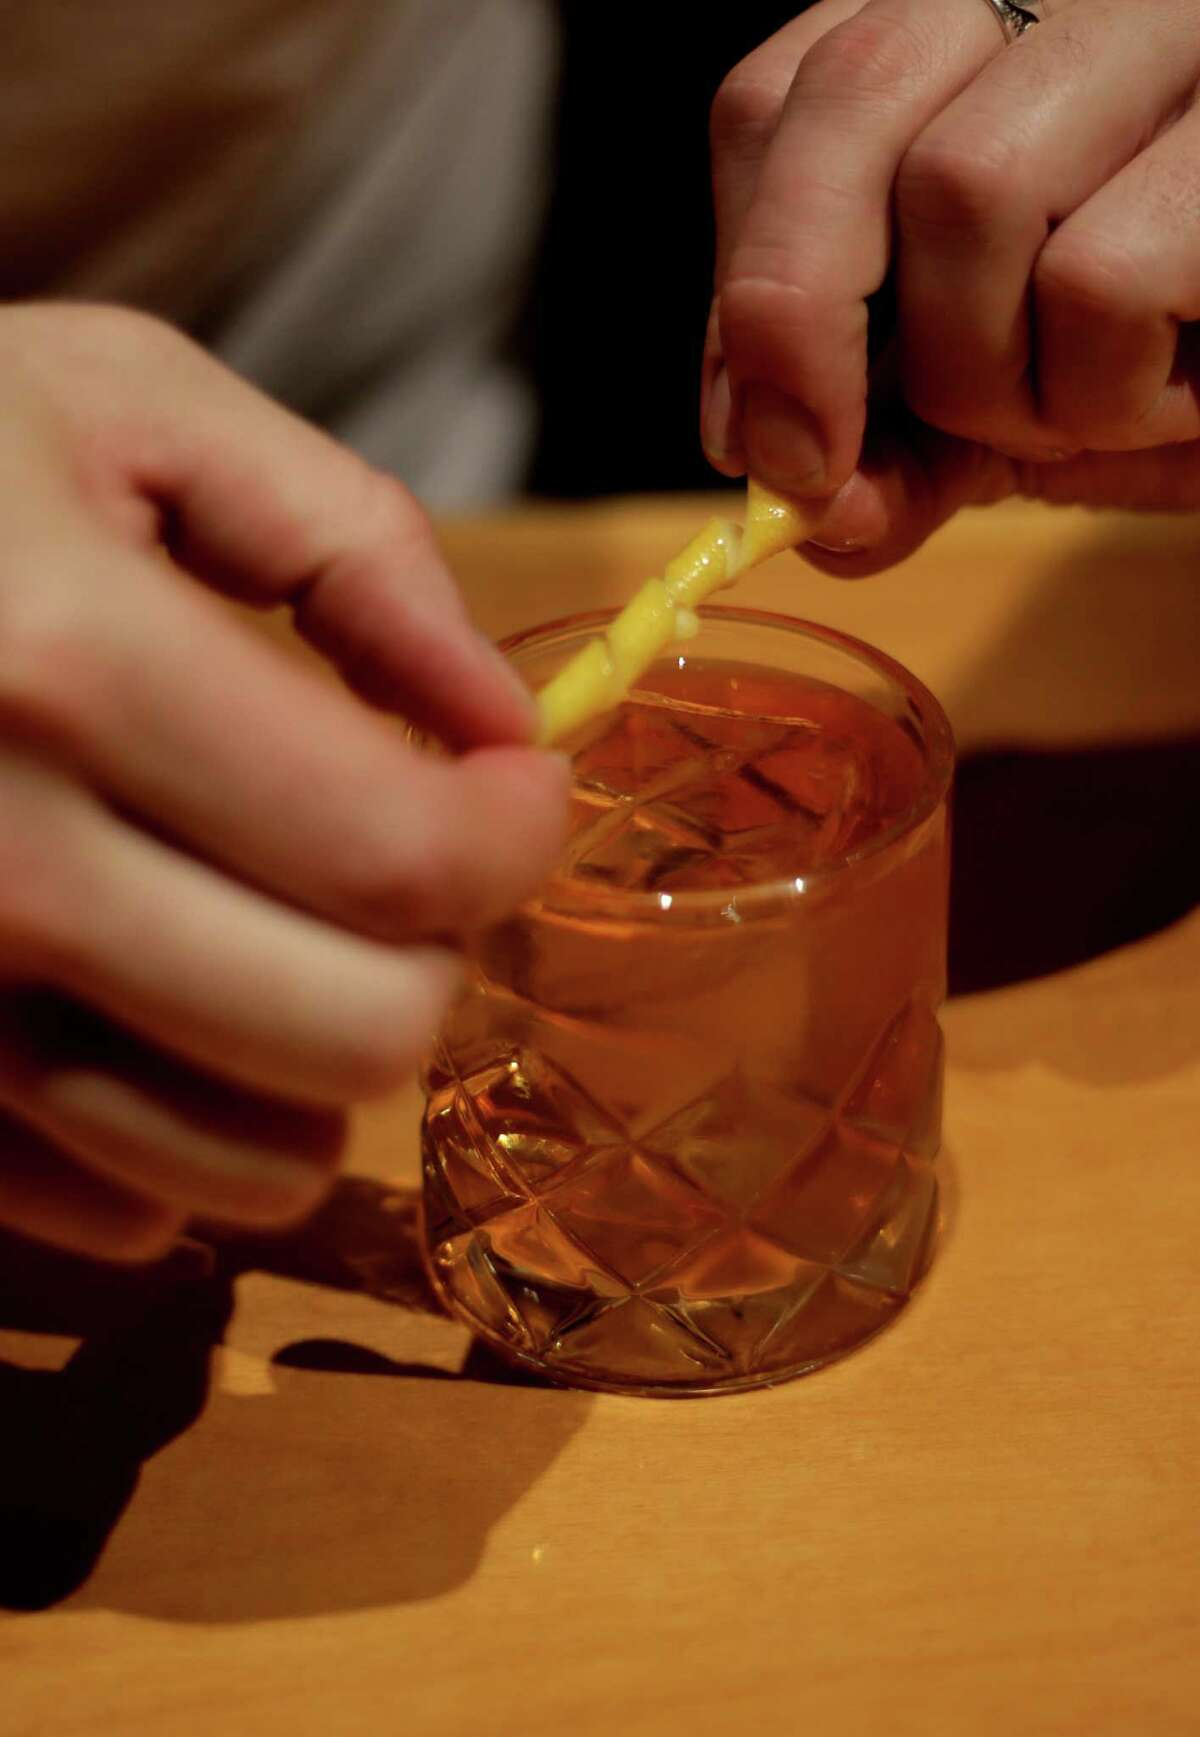 Peter Jahnke adds a lemon twist to a Rusty Nail at Tongue-Cut Sparrow, 310 Main, in downtown Houston.